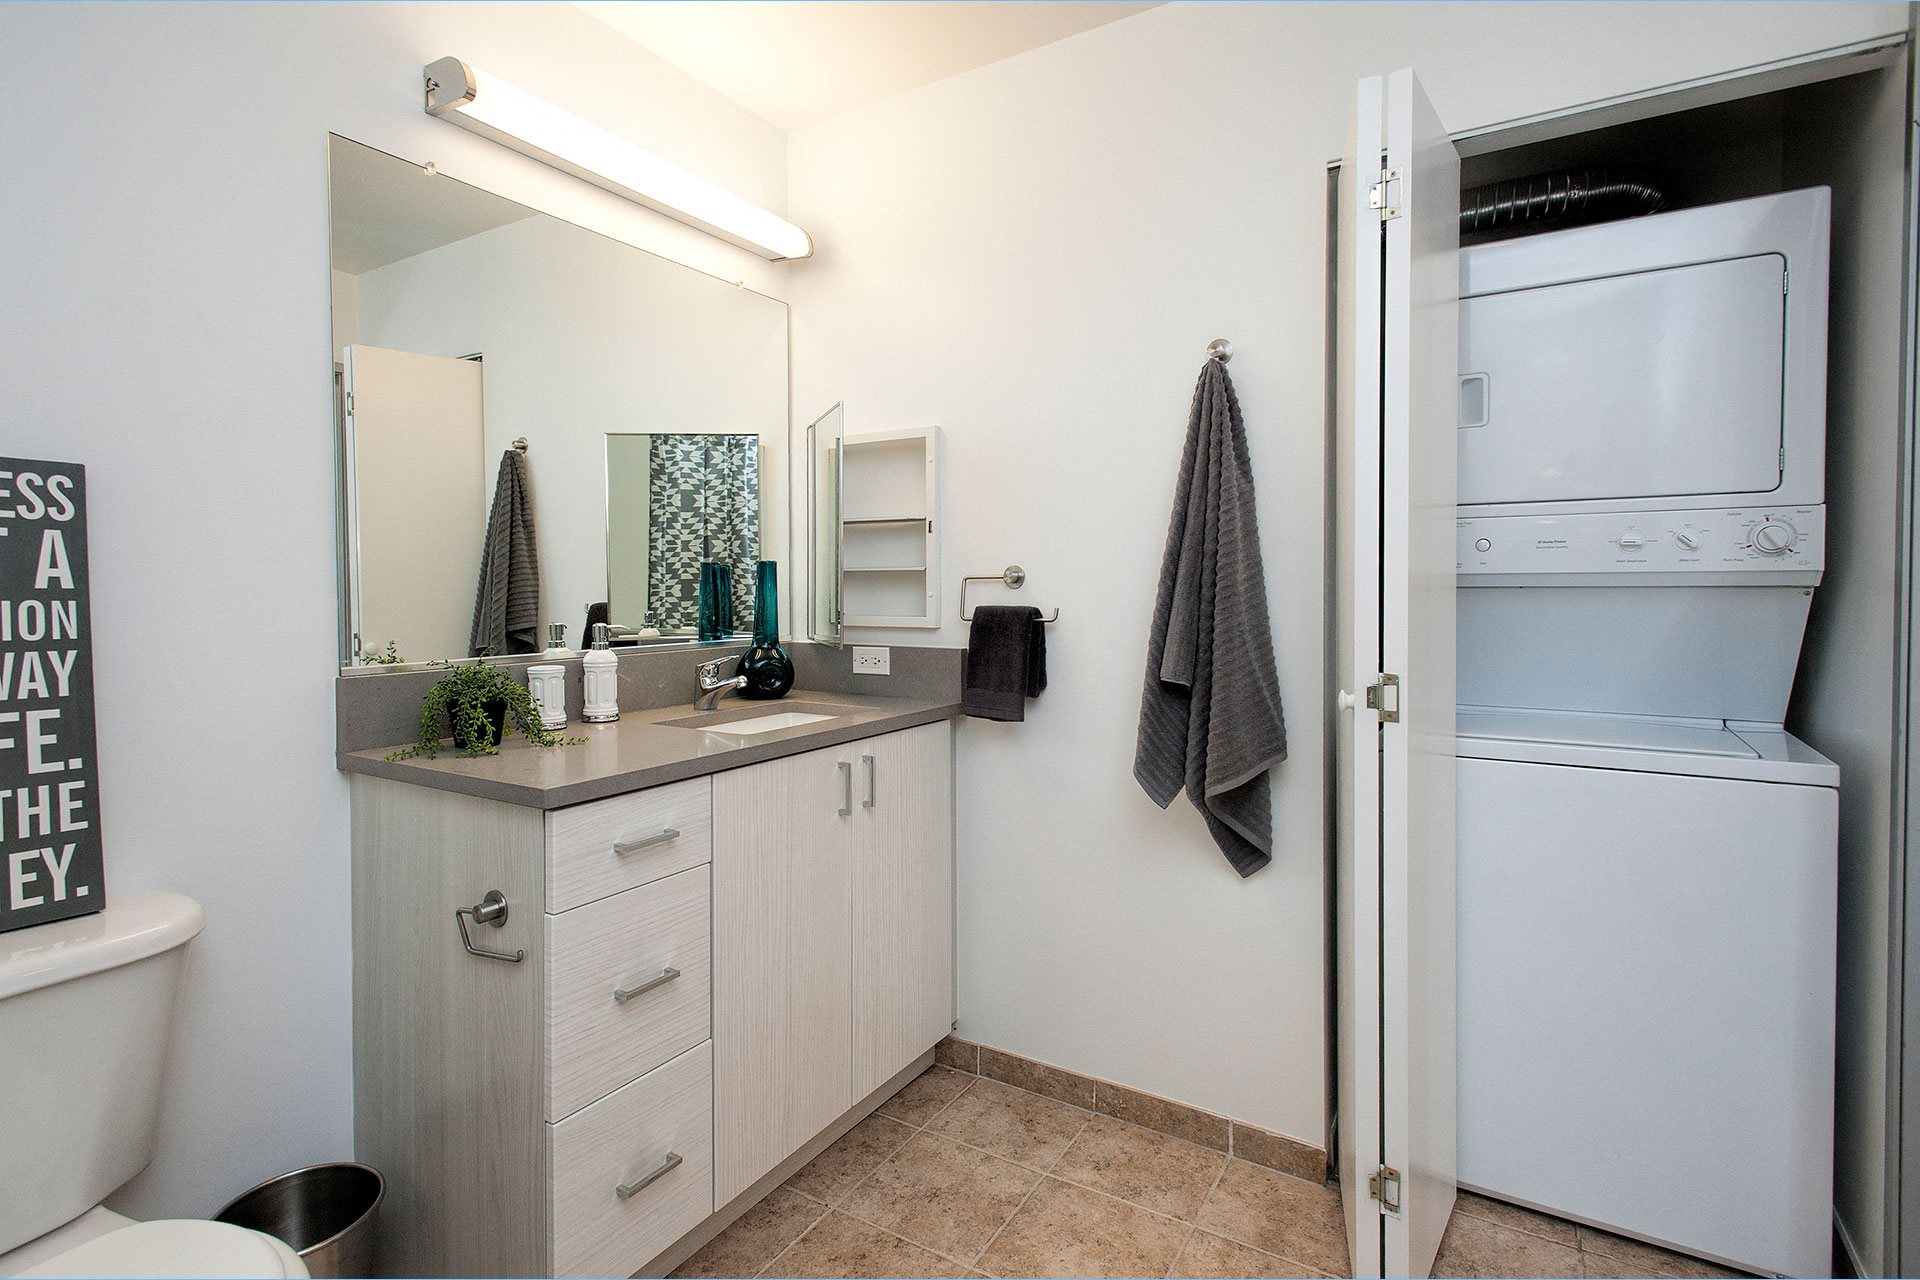 800J Lofts Bathroom and Washer and Dryer